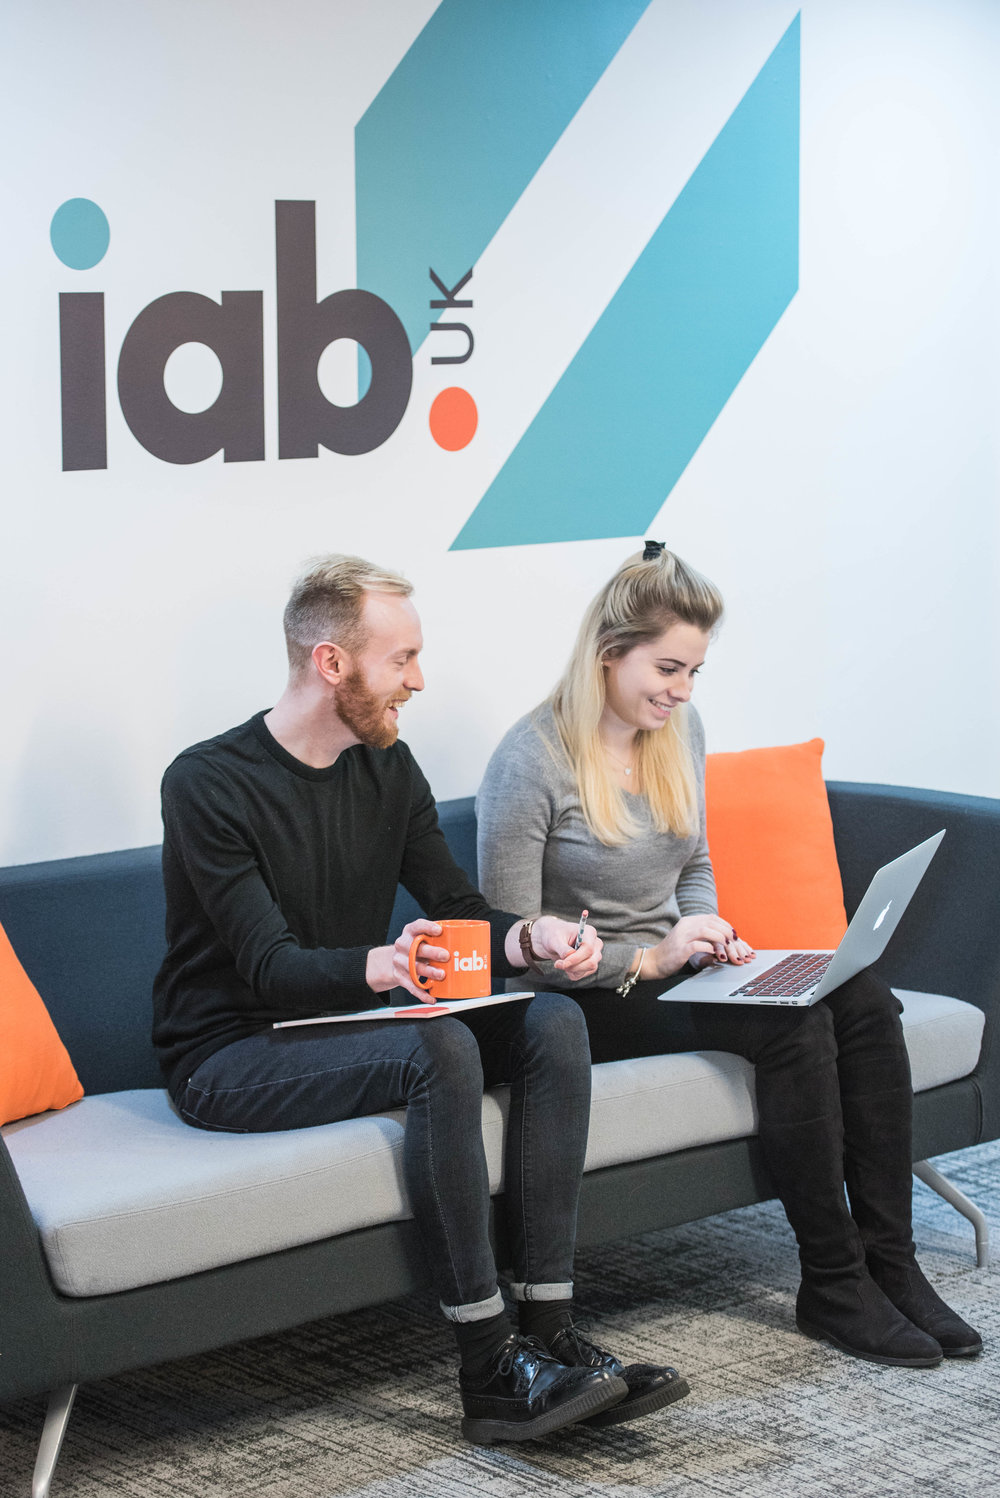 IAB Uk_Incidental Shots_SM (79 of 312).jpg